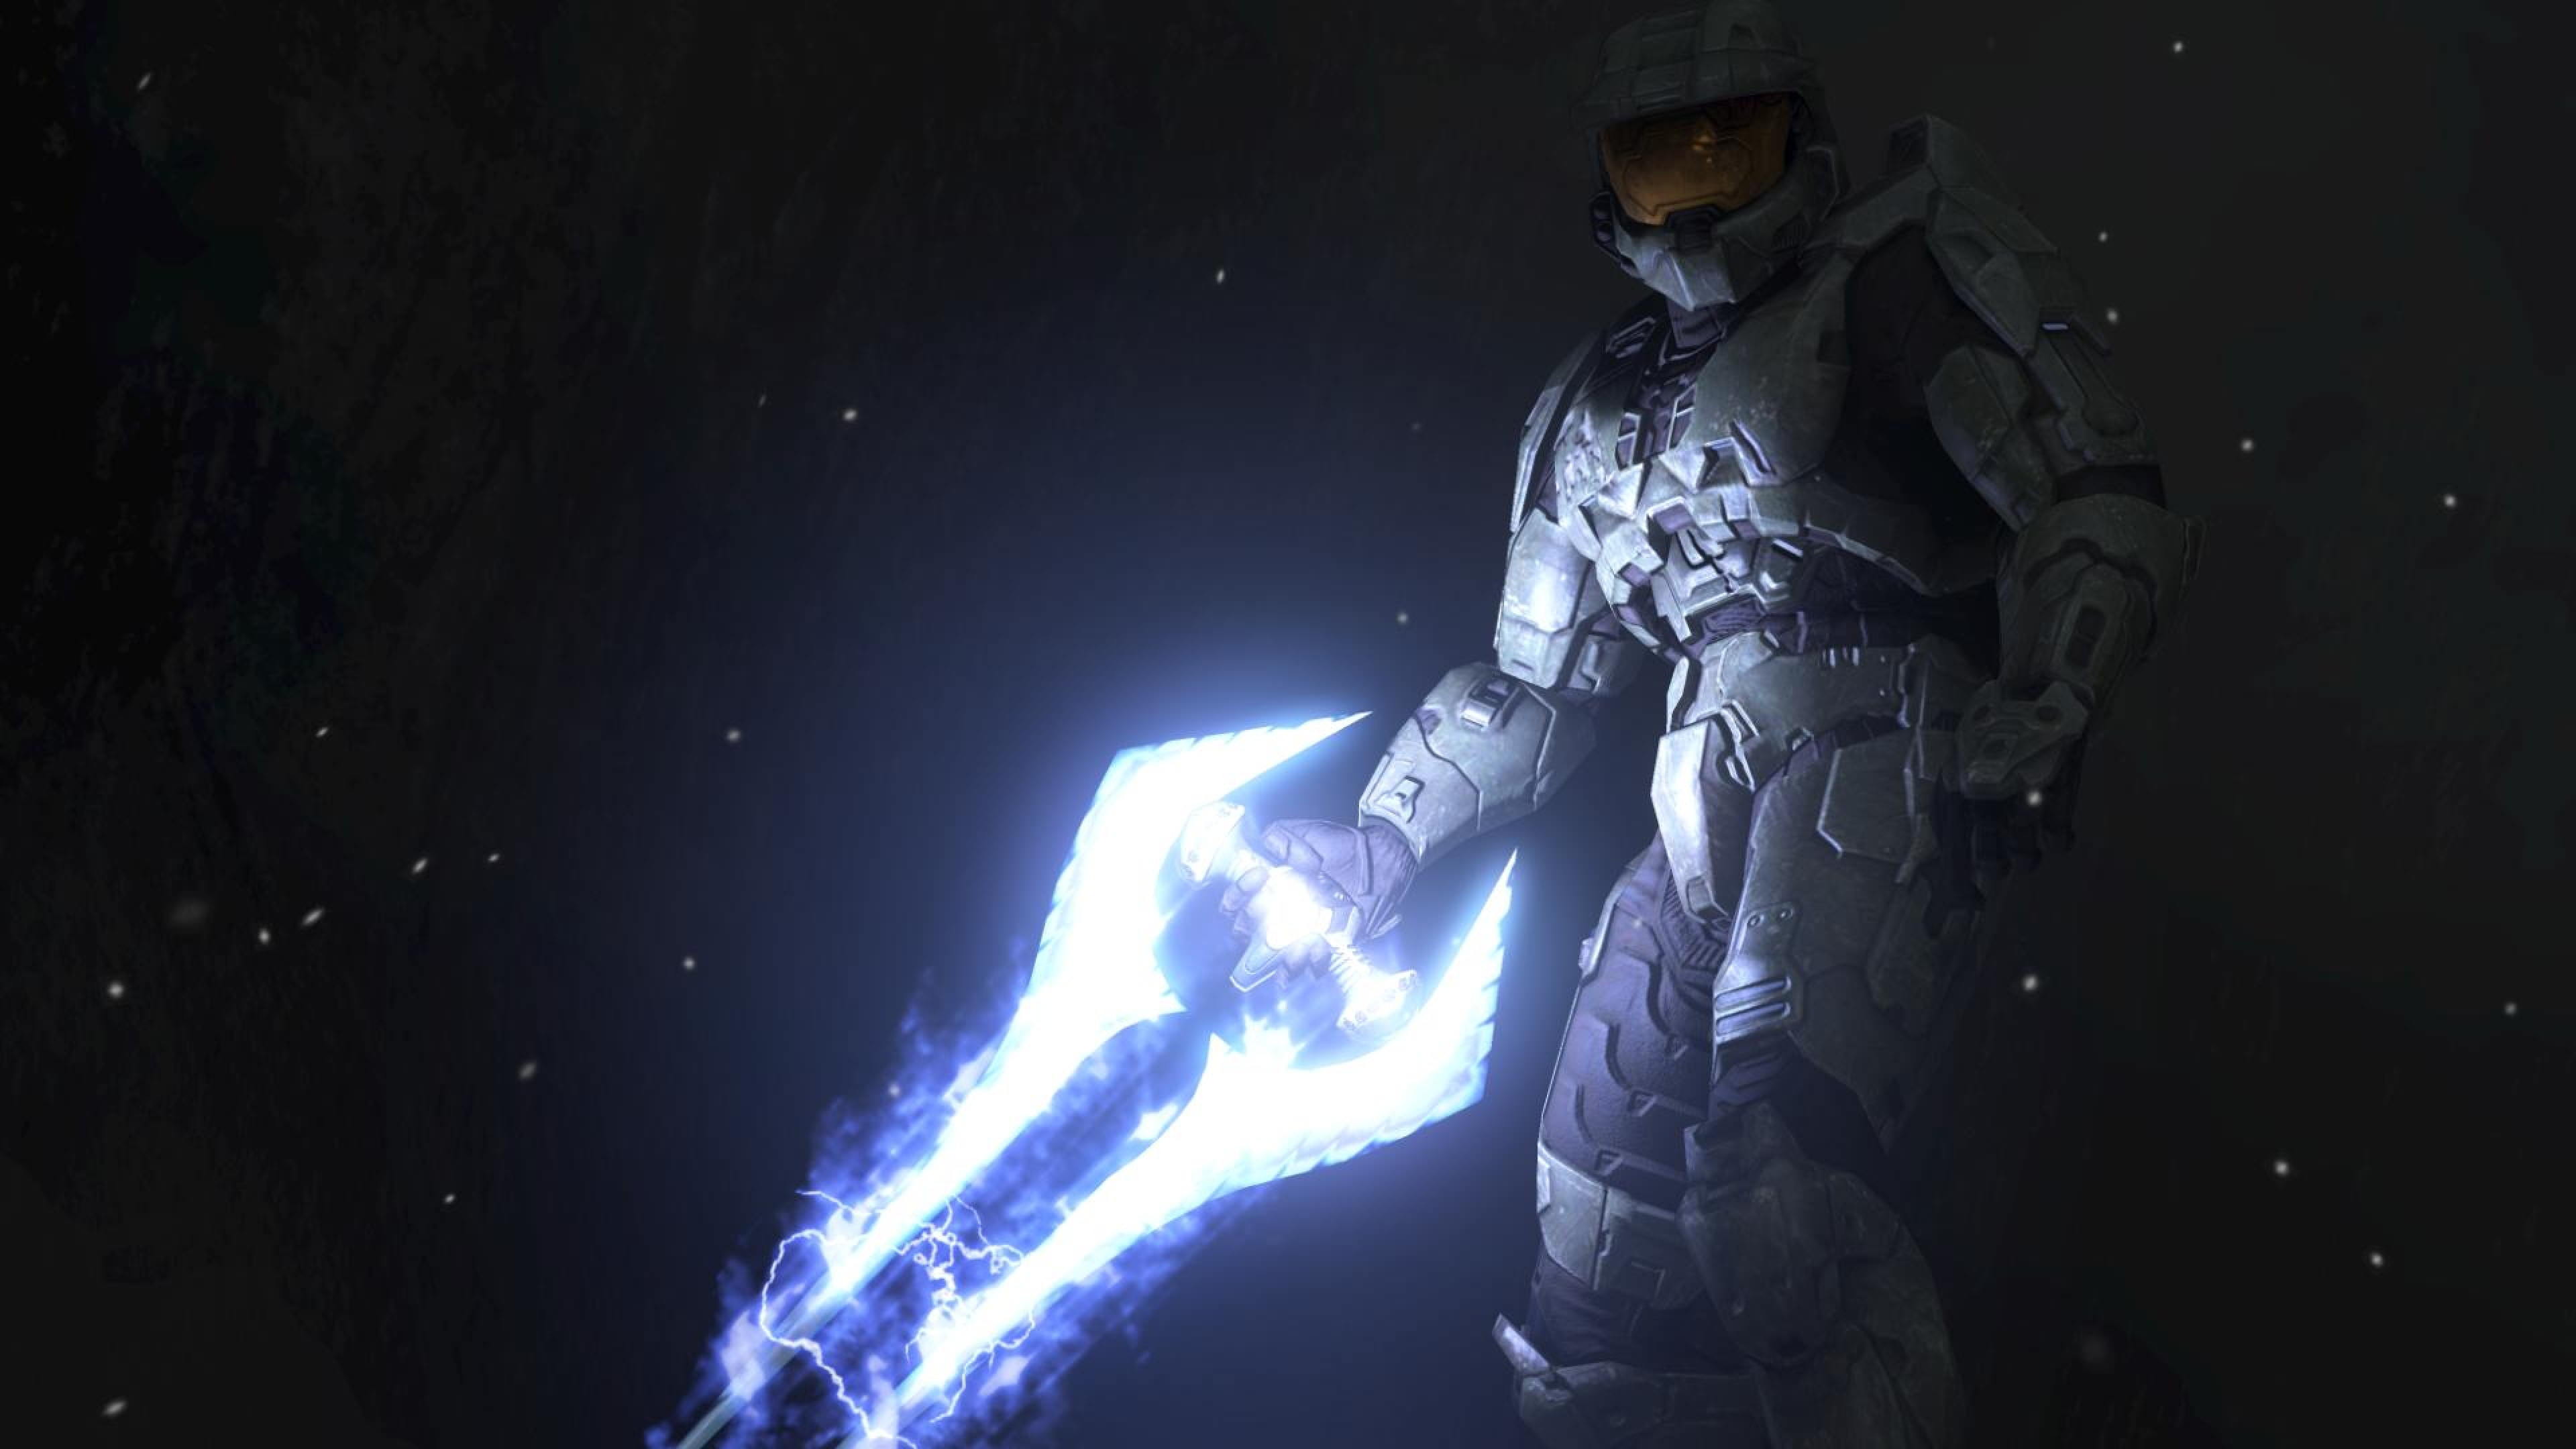 Halo Wallpaper HD High Quality 3840x2160